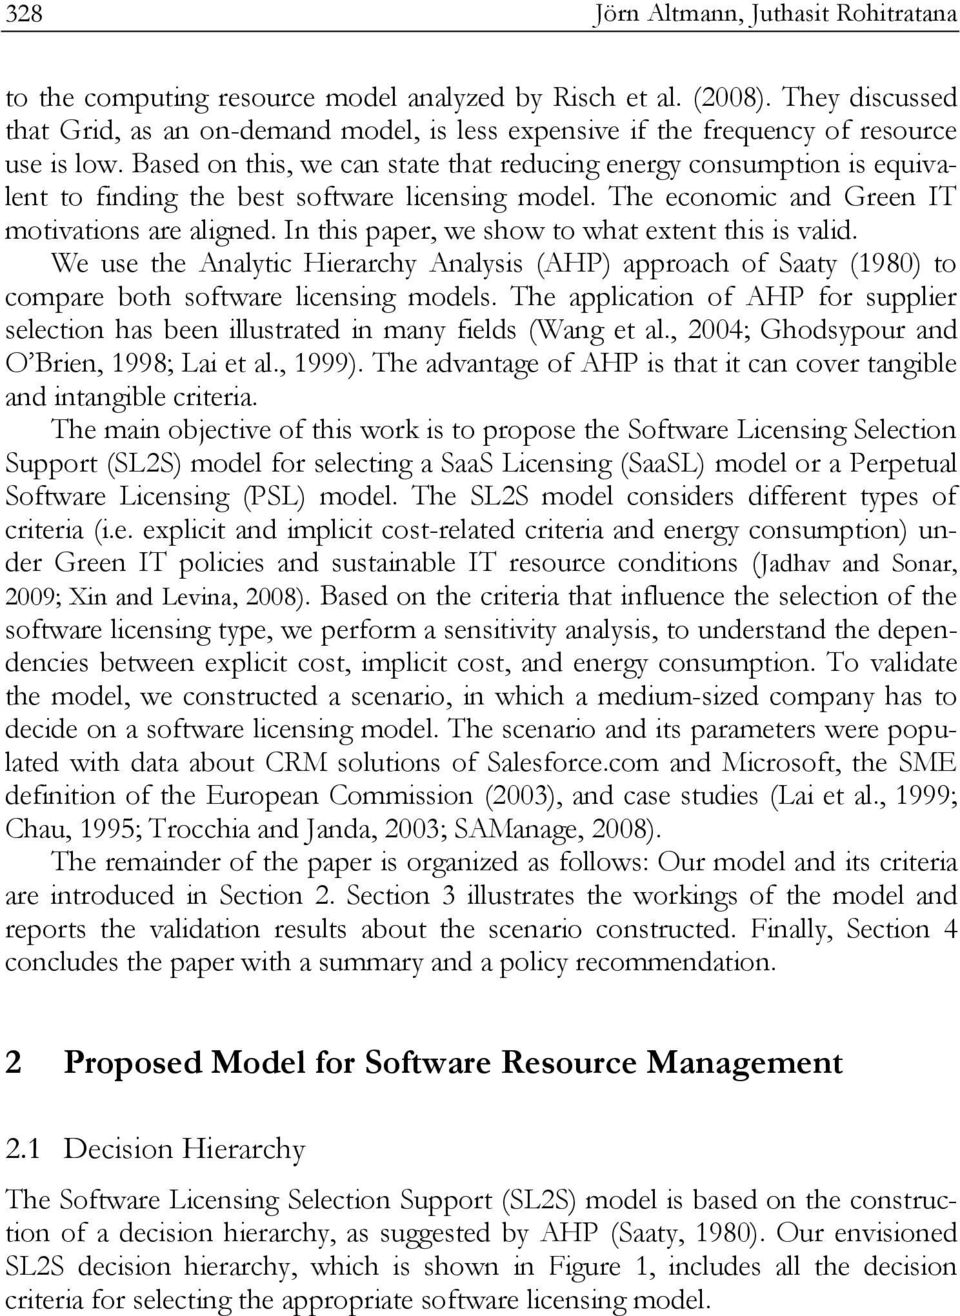 In this paper, we show to what extent this is valid. We use the Analytic Hierarchy Analysis (AHP) approach of Saaty (1980) to compare both software licensing models.